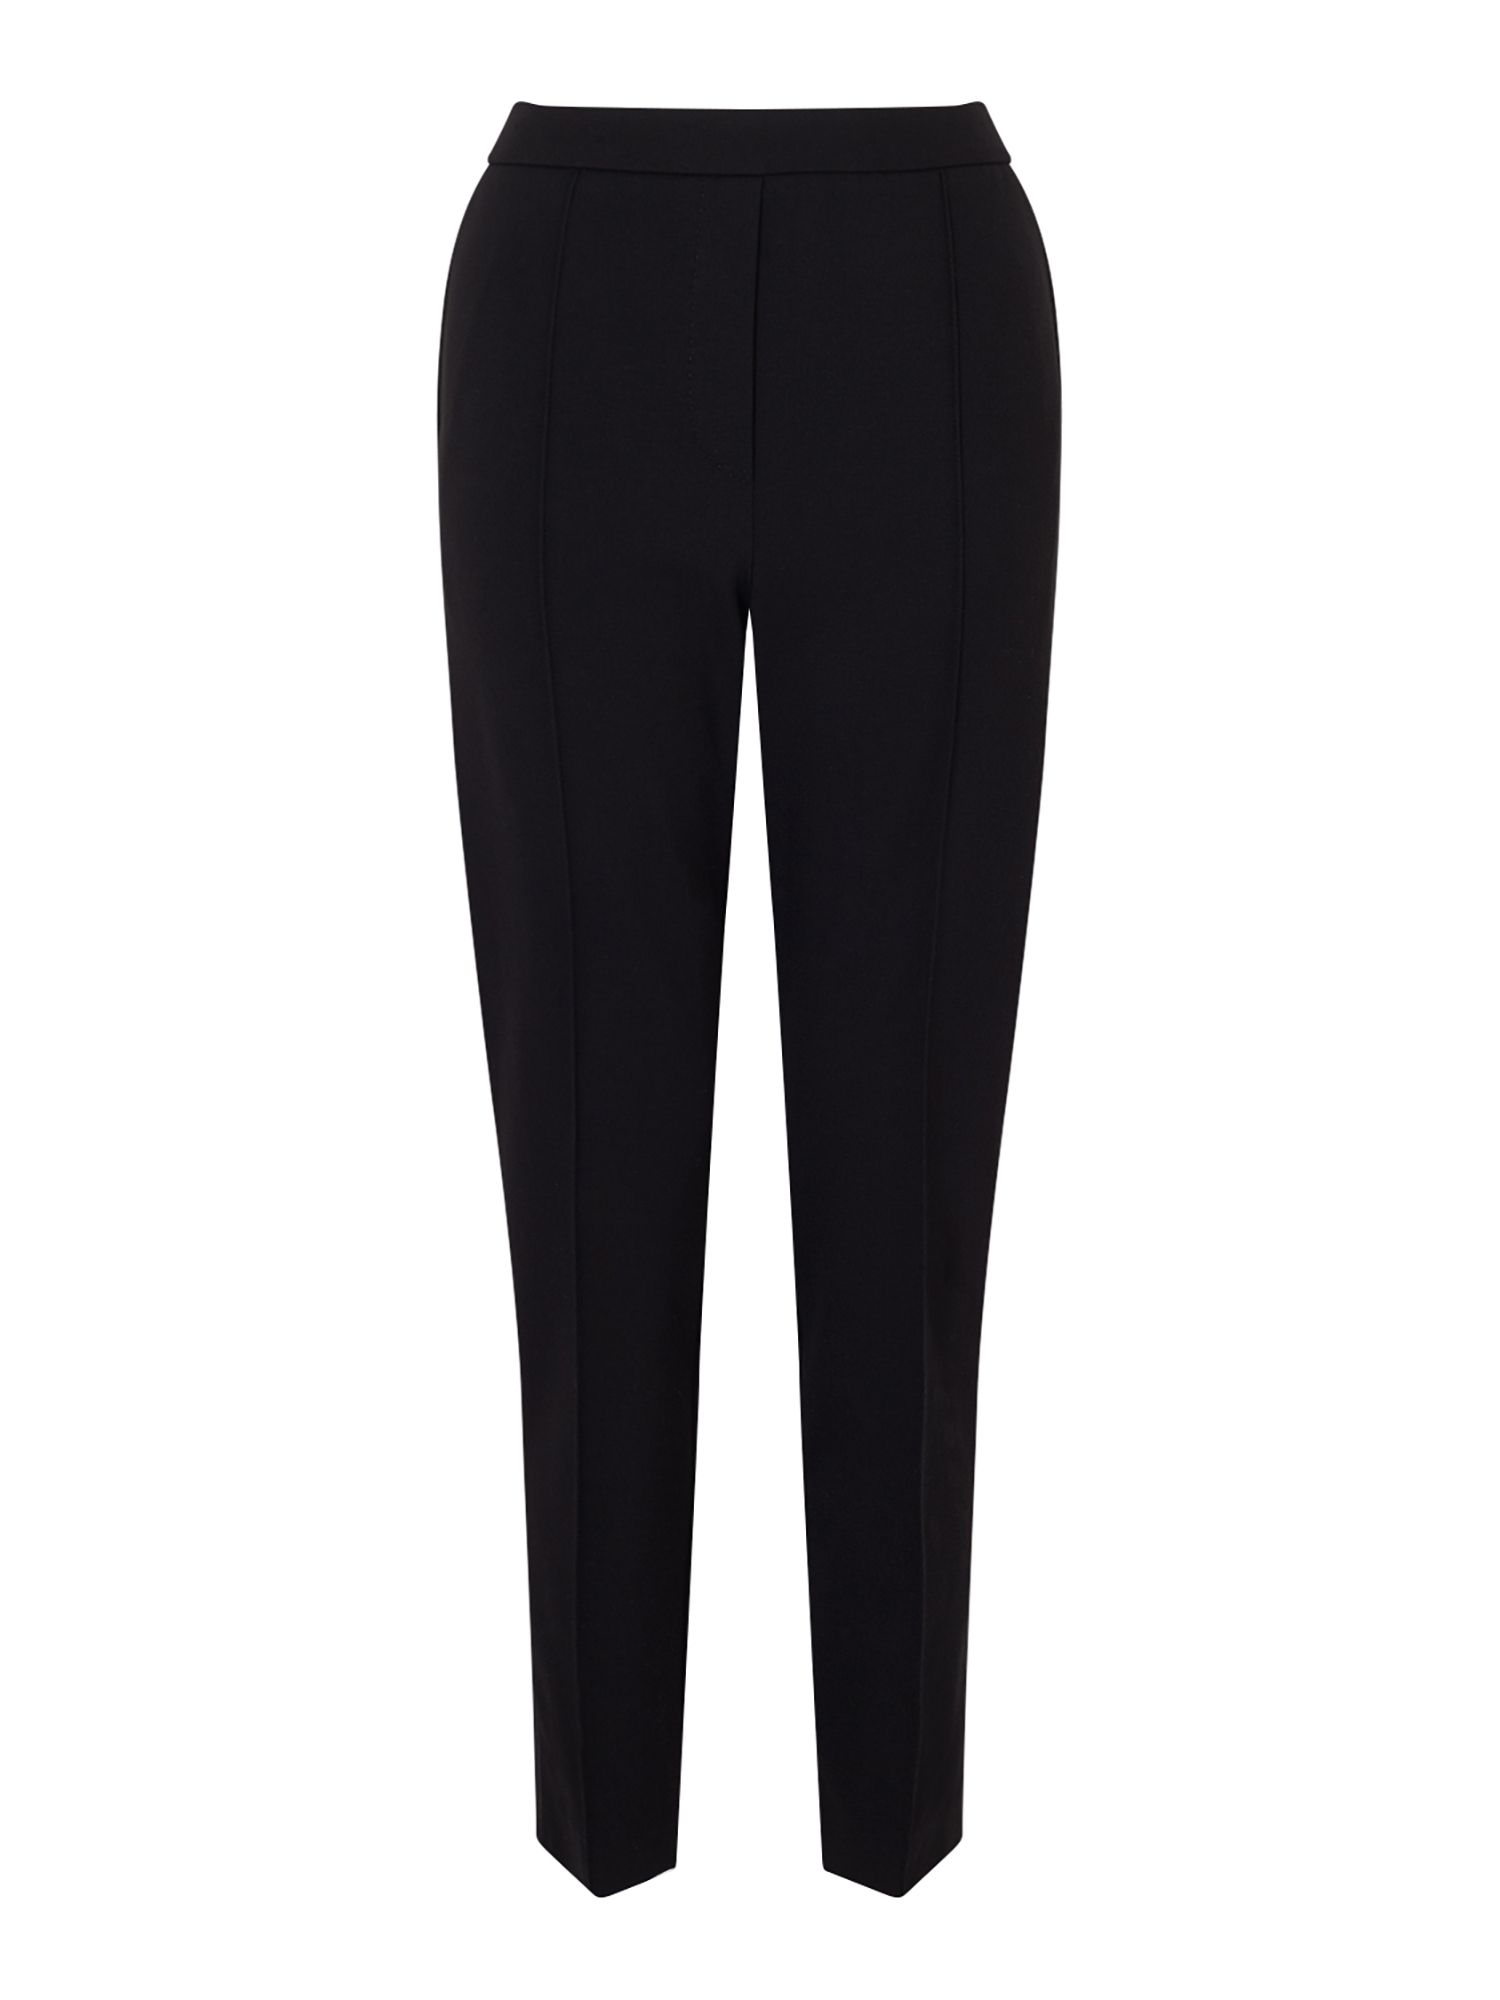 Jigsaw Lux Ponte Tailored Trouser, Black